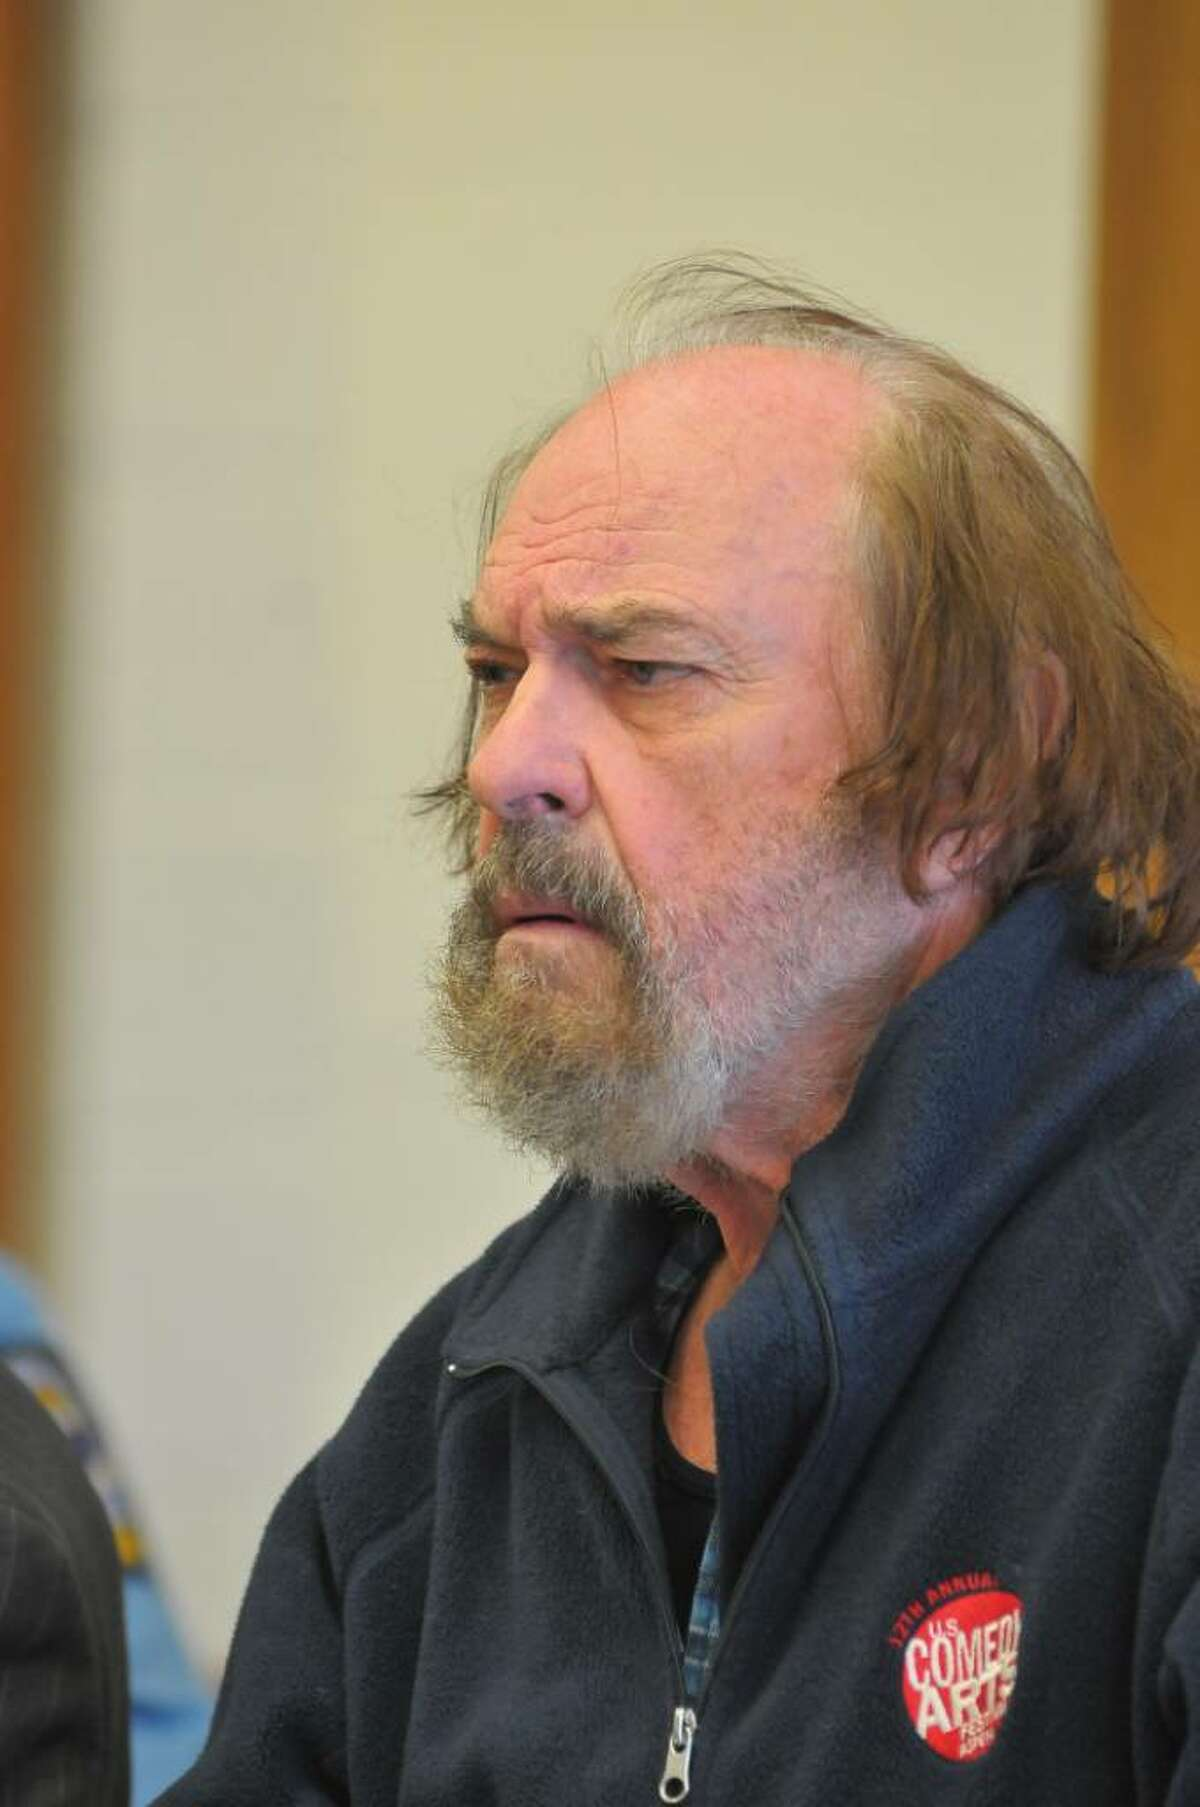 BANTAM, CT - FEBRUARY 1: Actor Rip Torn appears in Bantam Superior Court February 1, 2010 in Bantam, Connecticut. Torn was arraigned on charges of criminal trespass, carrying a gun without a permit, carrying a gun while intoxicated, burglary and criminal mischief and was released on a $100,000 bond. Police responding to an alarm found Torn in the Litchfield Bancorp branch's lobby Friday night after he reportedly broke into the bank though a window while intoxicated. (Photo by Jim Shannon-Pool/Getty Images) *** Local Caption *** Rip Torn